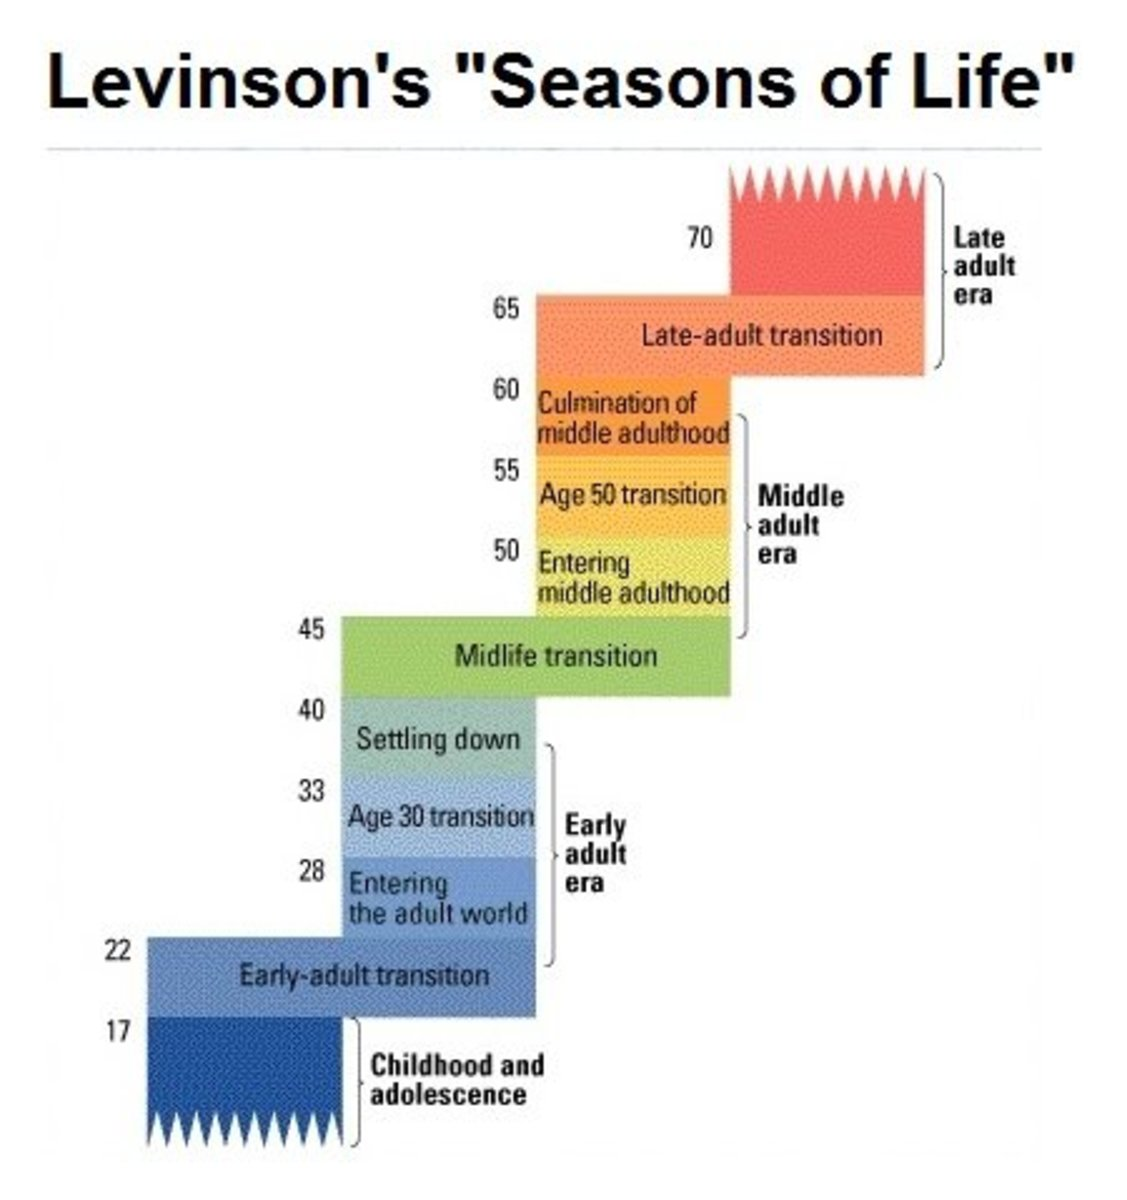 Daniel Levinson's Lifespan Development Theory